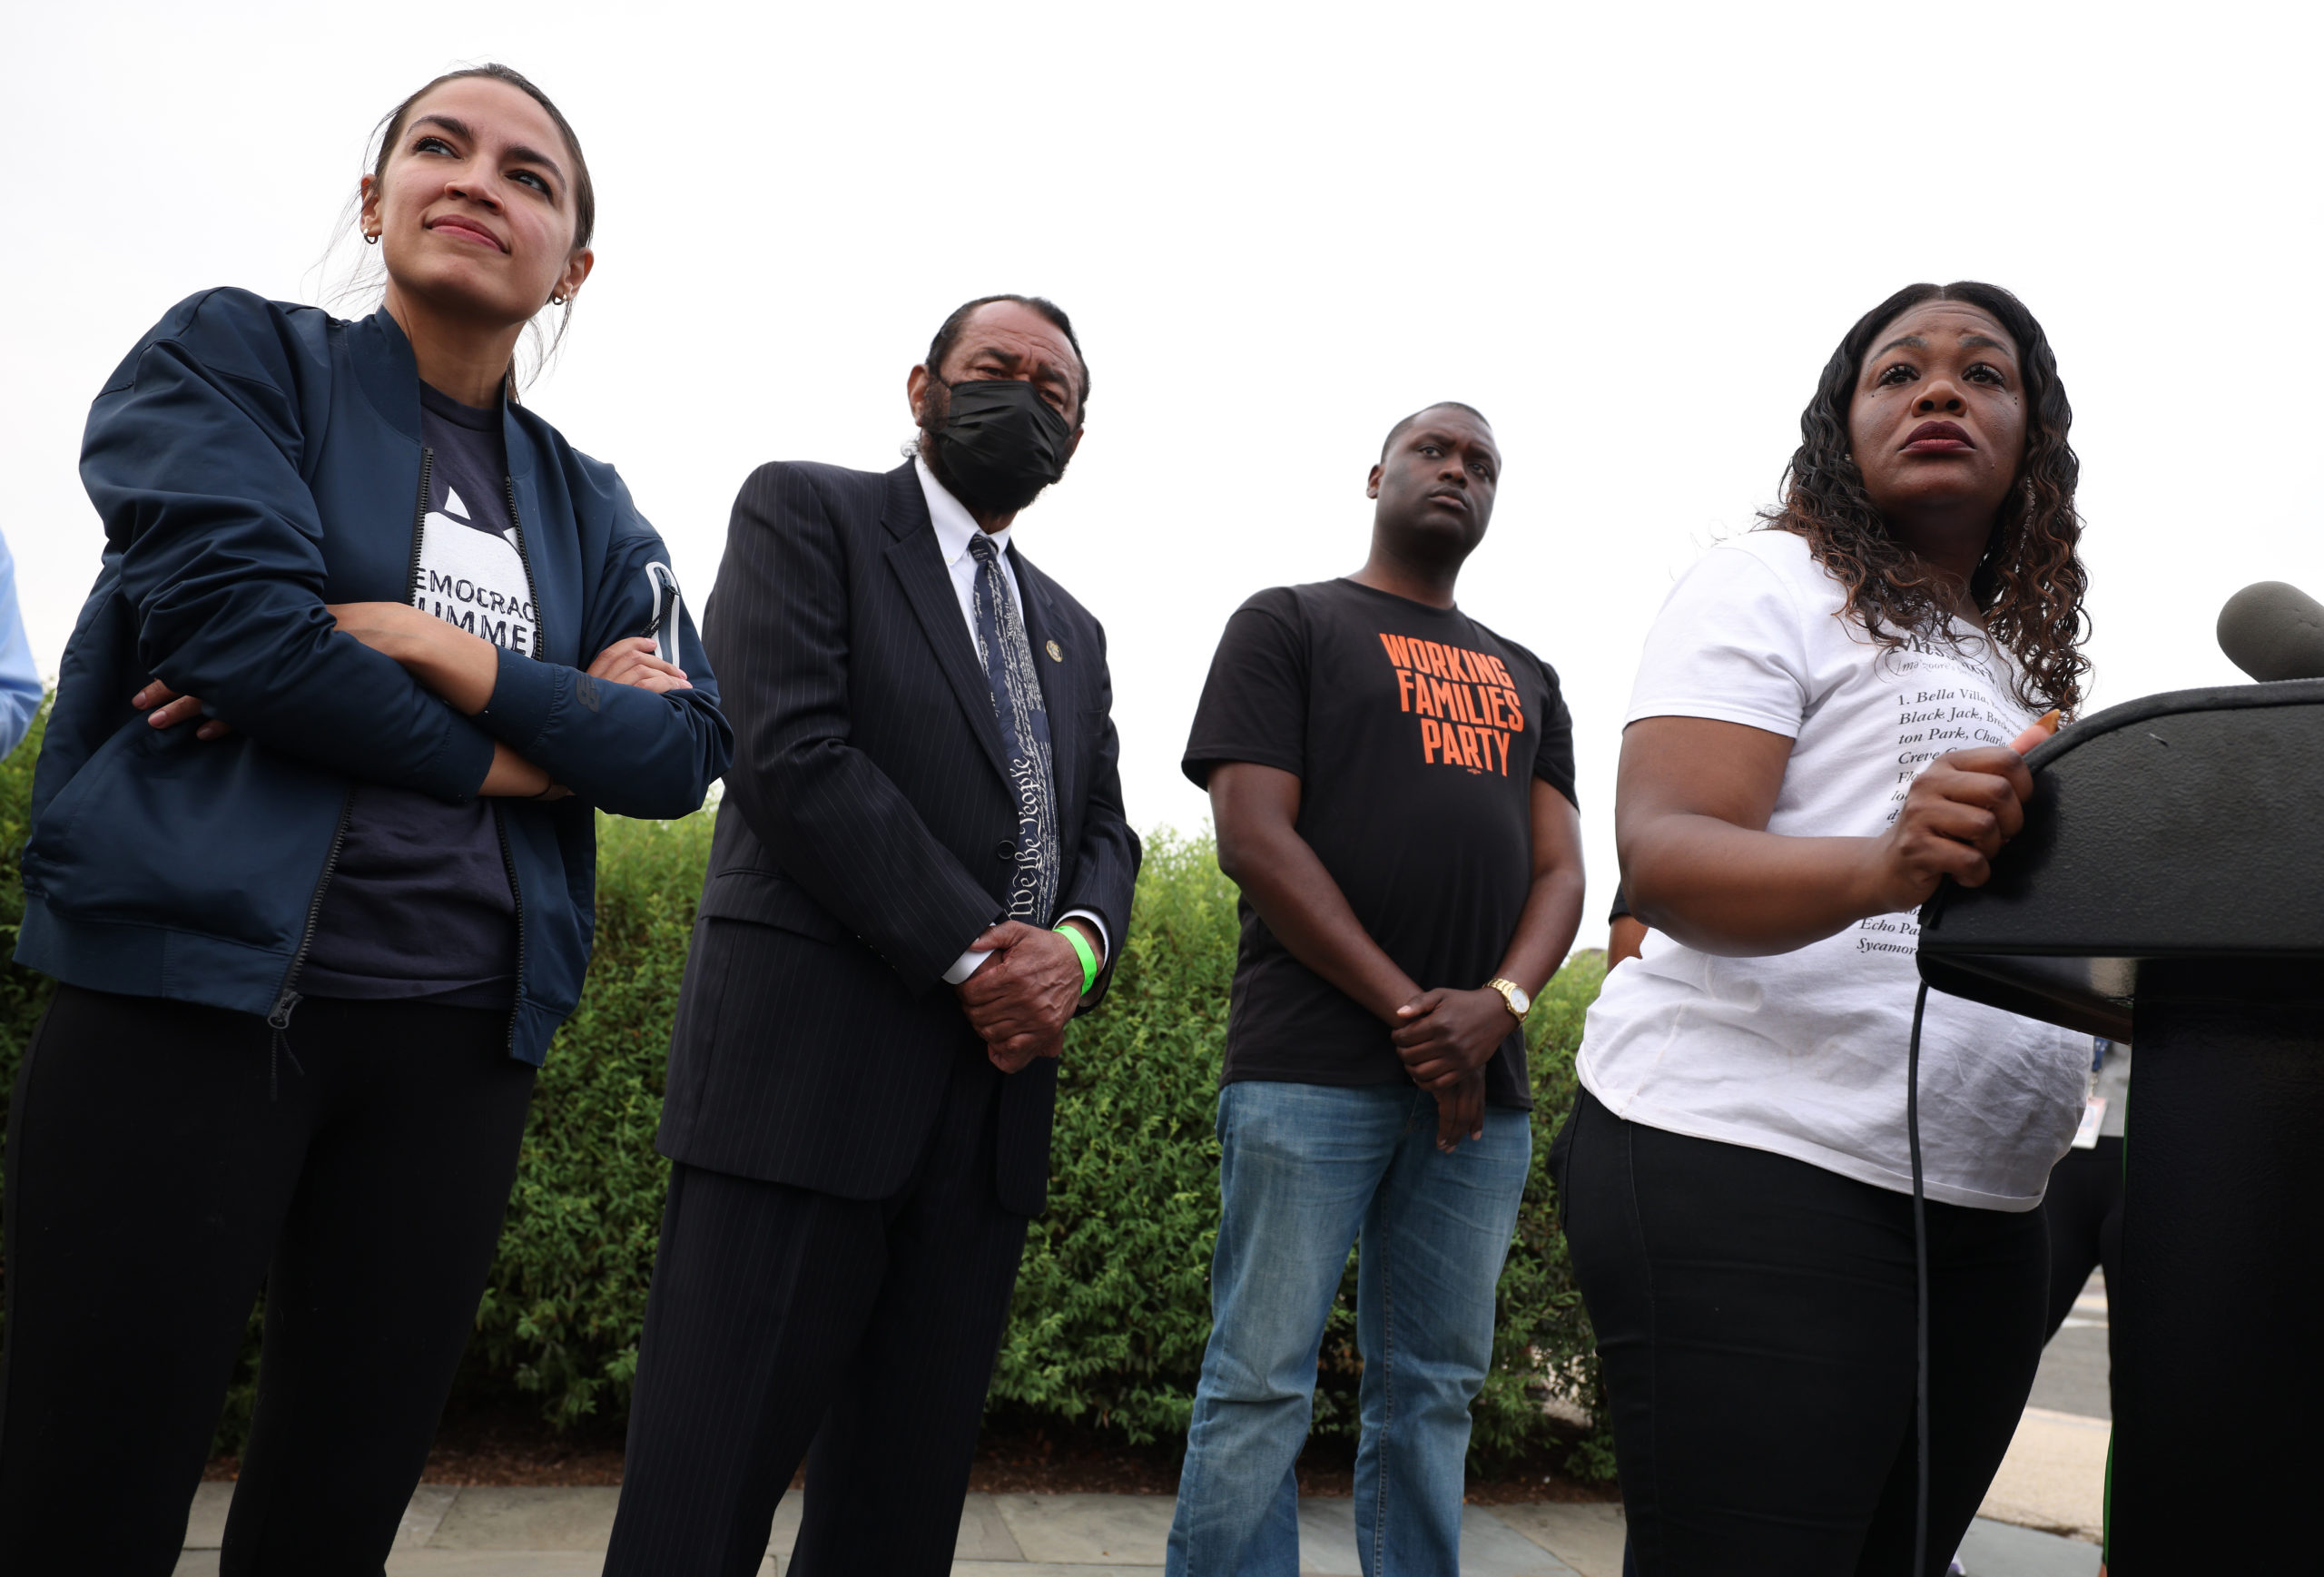 Reps. Cori Bush, Mondaire Jones, Al Green and Alexandria Ocasio-Cortez hold a news conference about the eviction moratorium on Tuesday. (Kevin Dietsch/Getty Images)